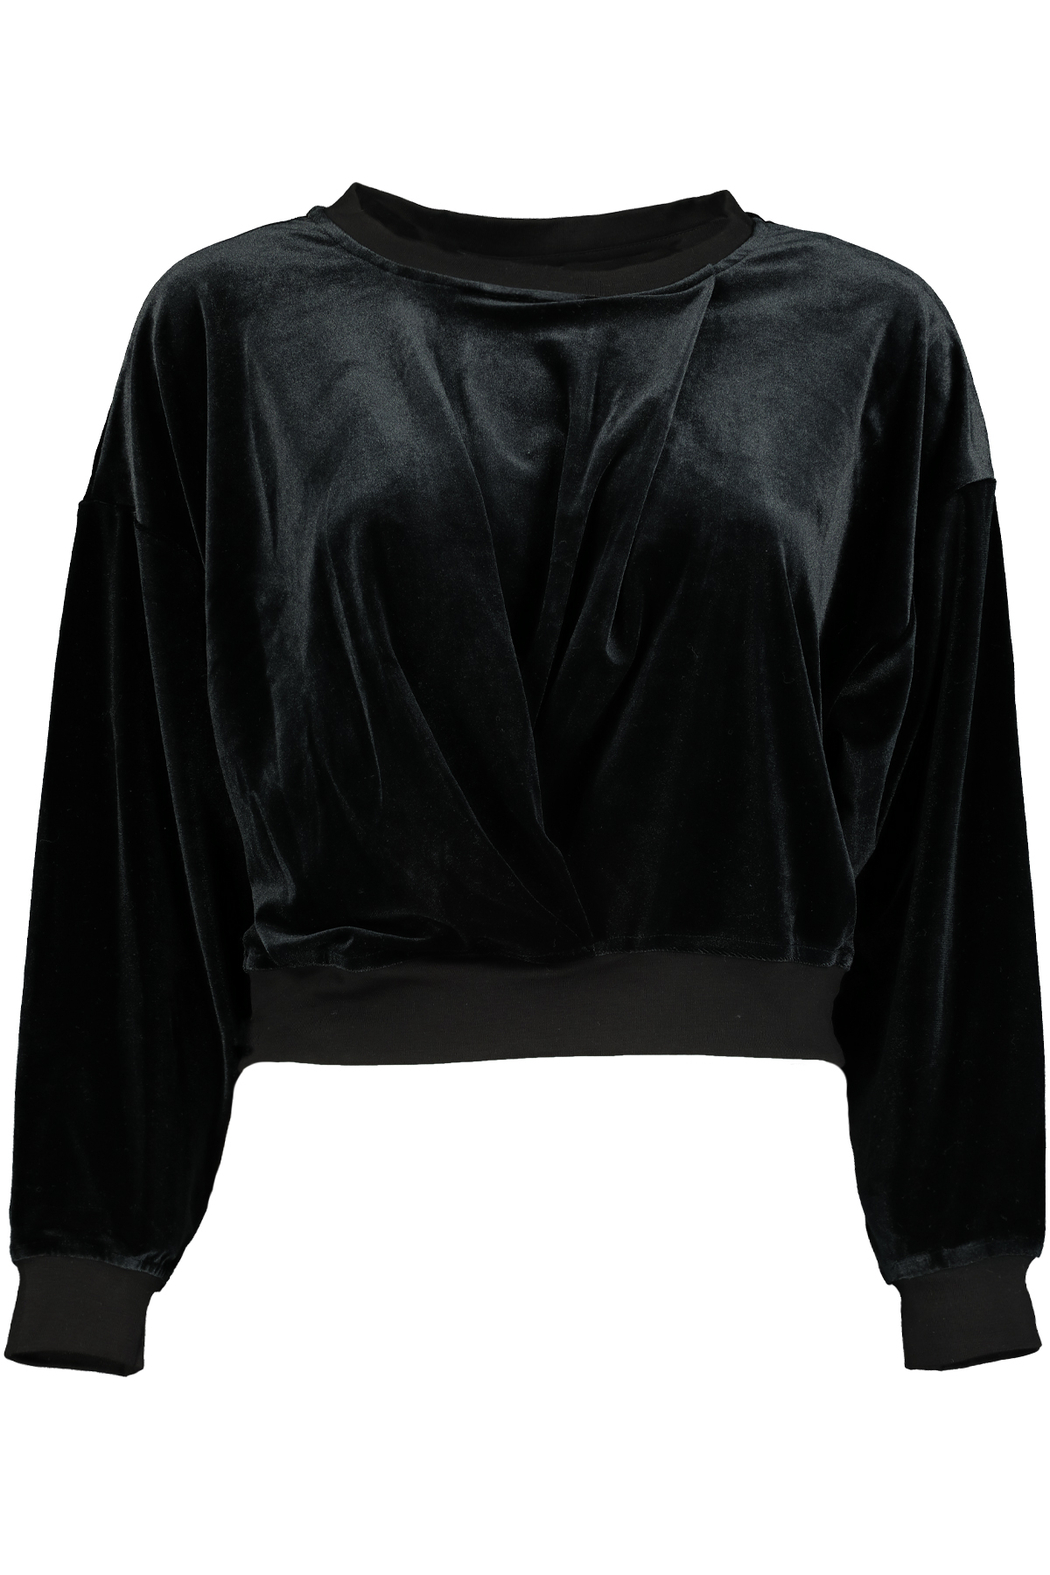 Bishop + Young Velvet Knot Front Sweatshirt - Front Cropped Image